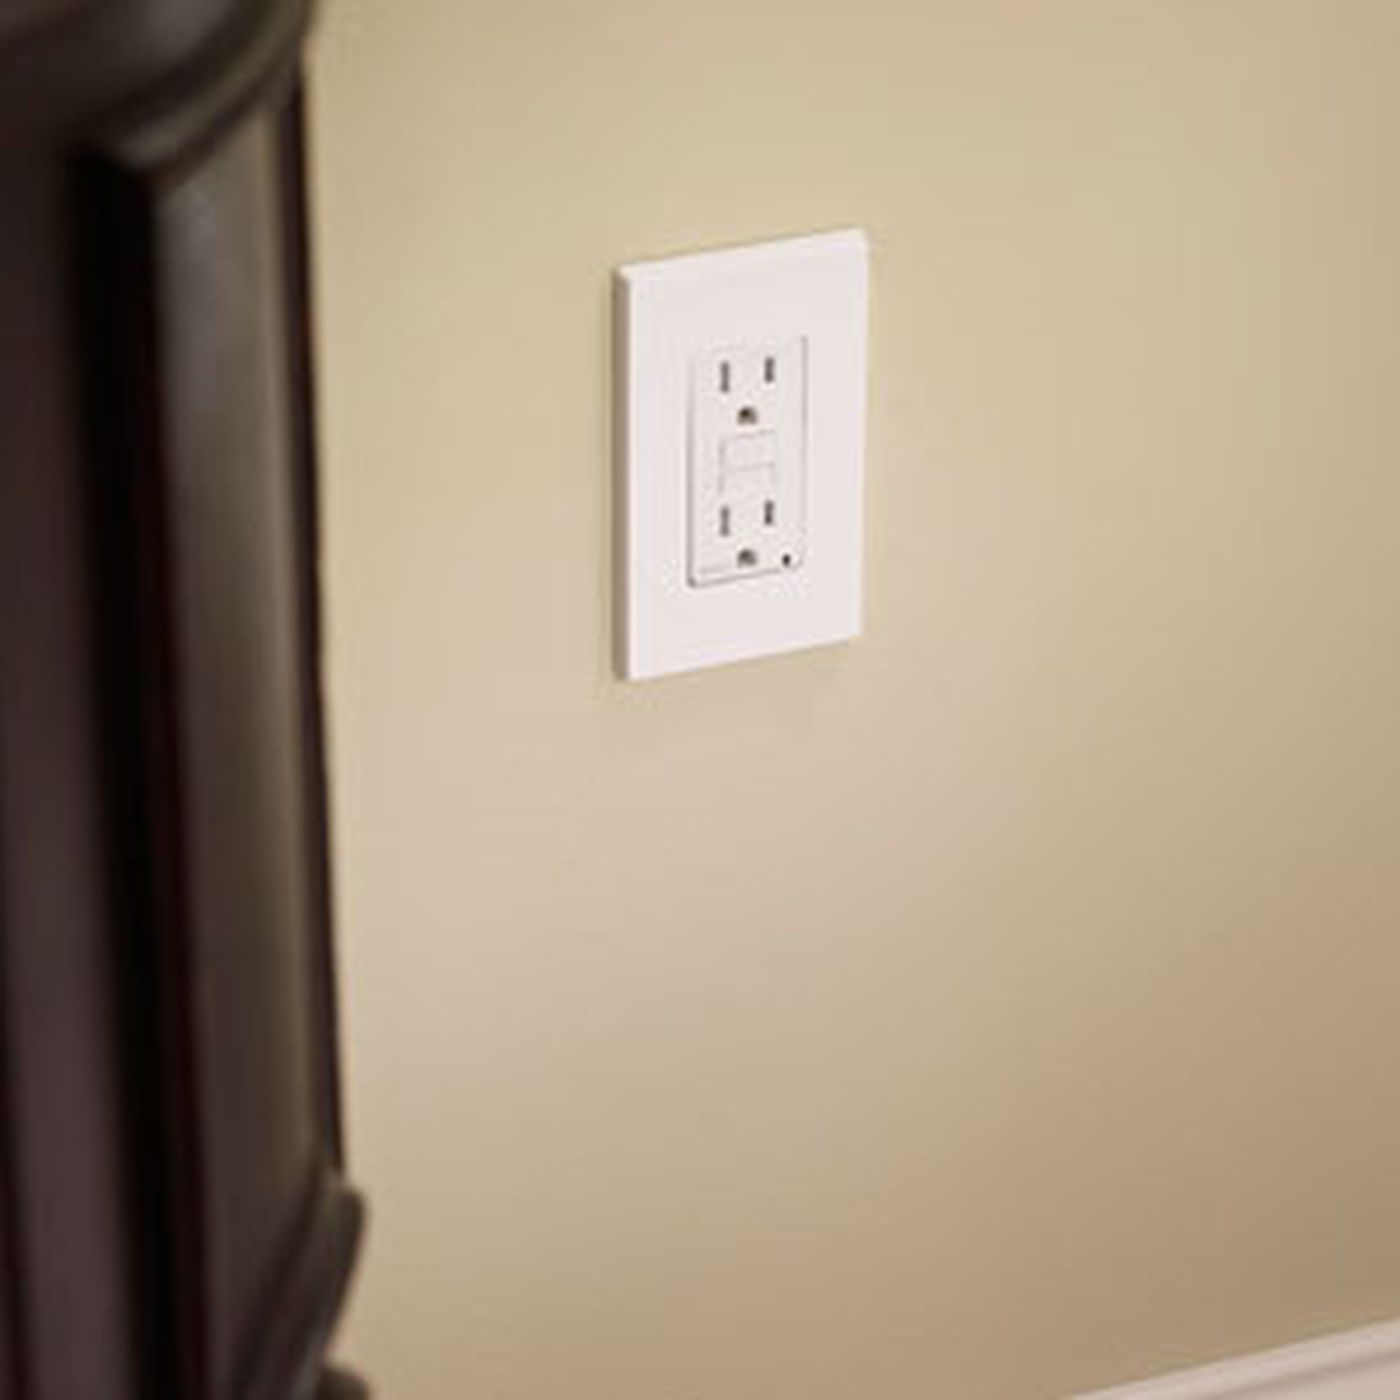 afci circuit bedroom wiring diagram prevent electrical fires with arc fault circuit interrupters  prevent electrical fires with arc fault